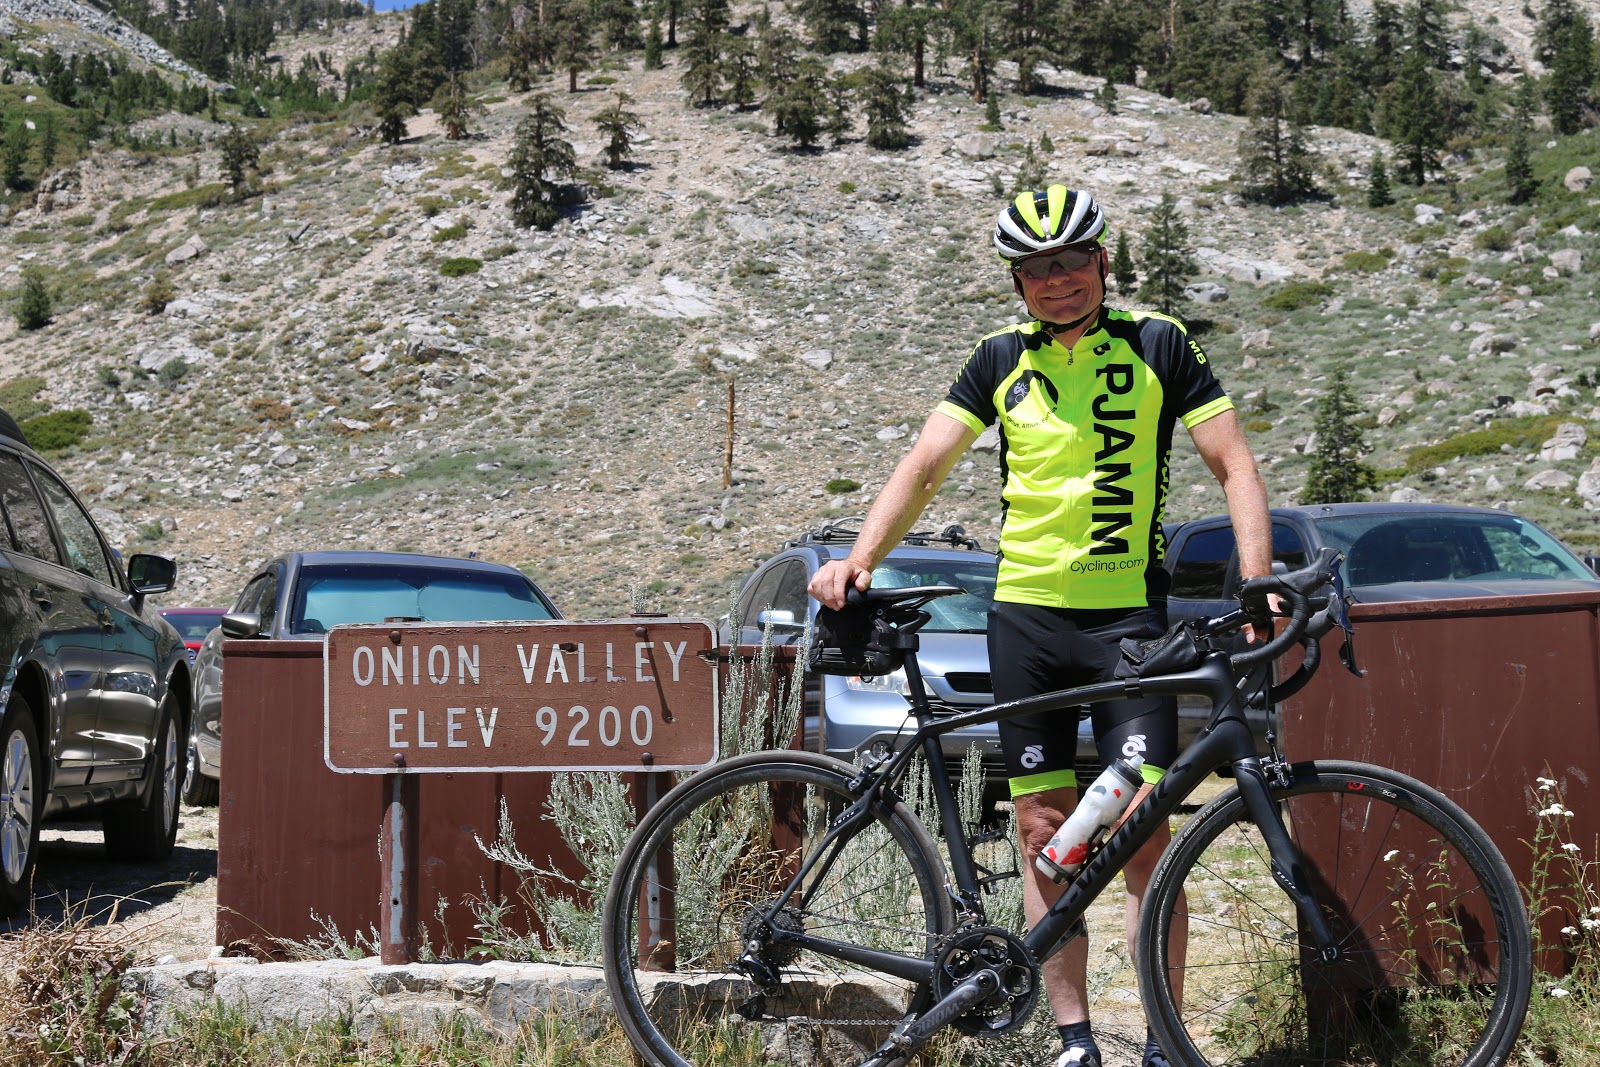 Cyclist at Onion Valley Road Elevation 9200 sign